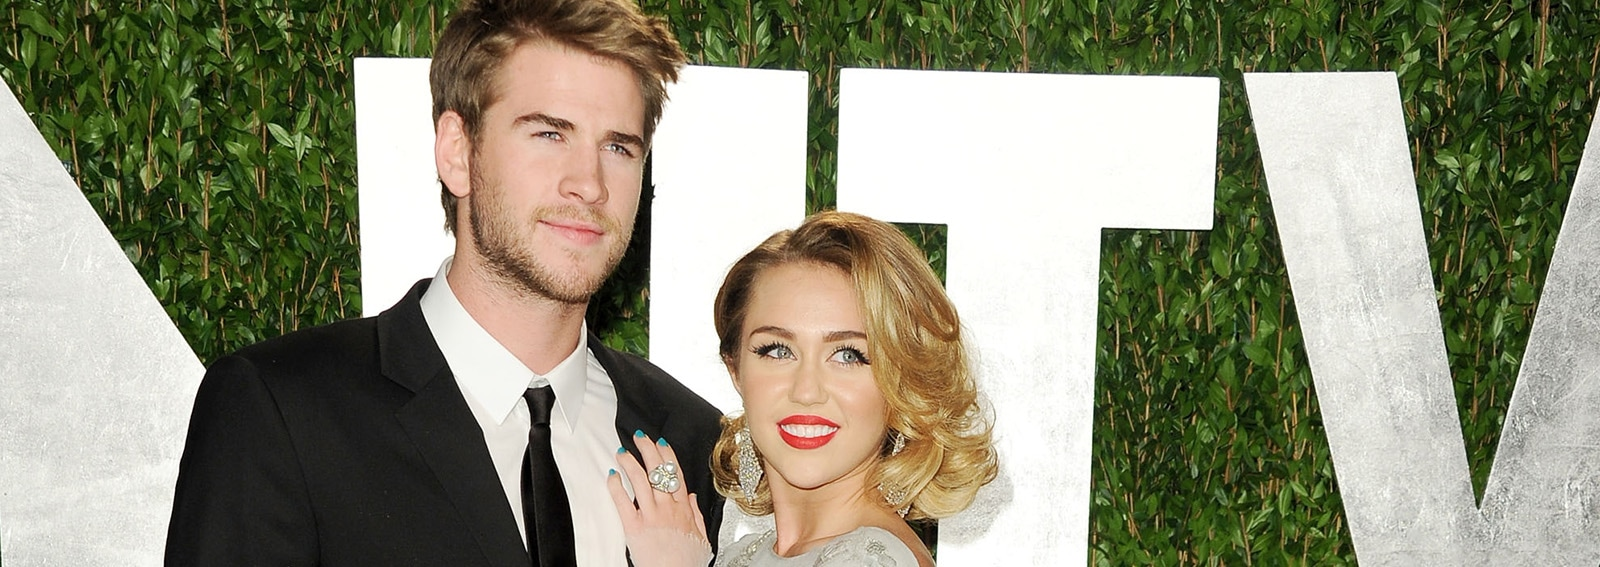 cover miley cyrus liam hemsworth sposati desktop